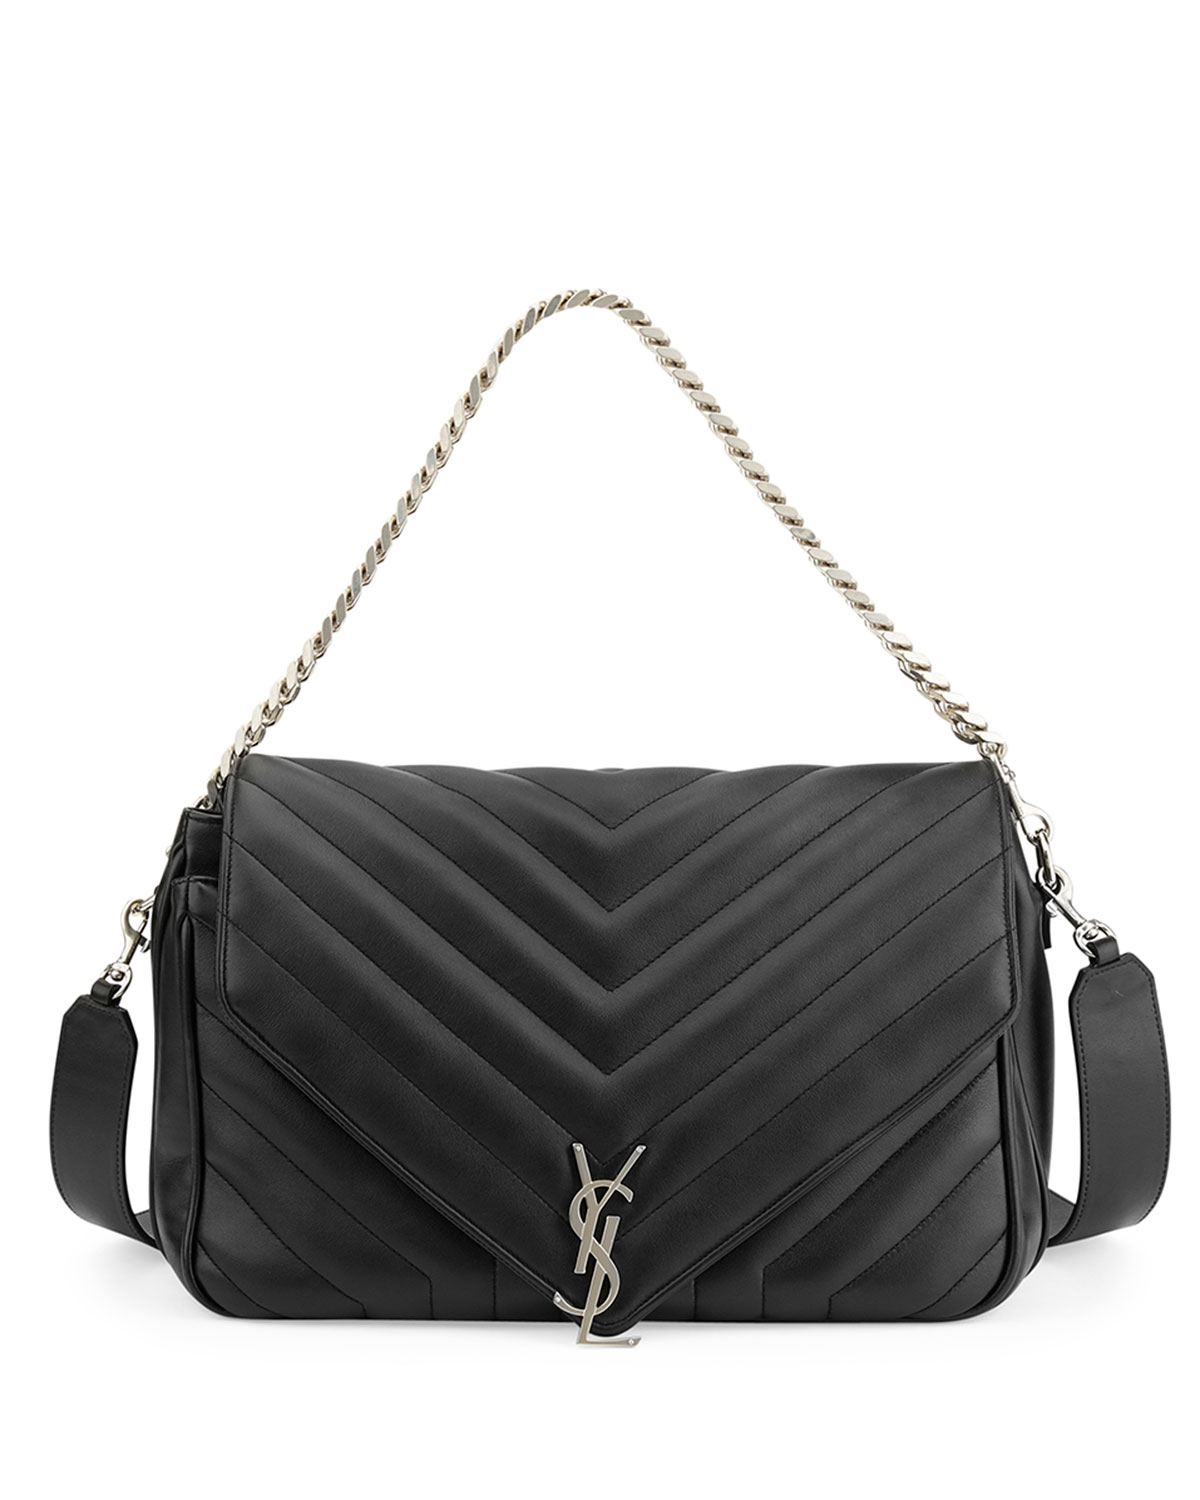 d085400cb1 Saint Laurent Monogram Large Slouchy Matelassé Leather Shoulder Bag ...